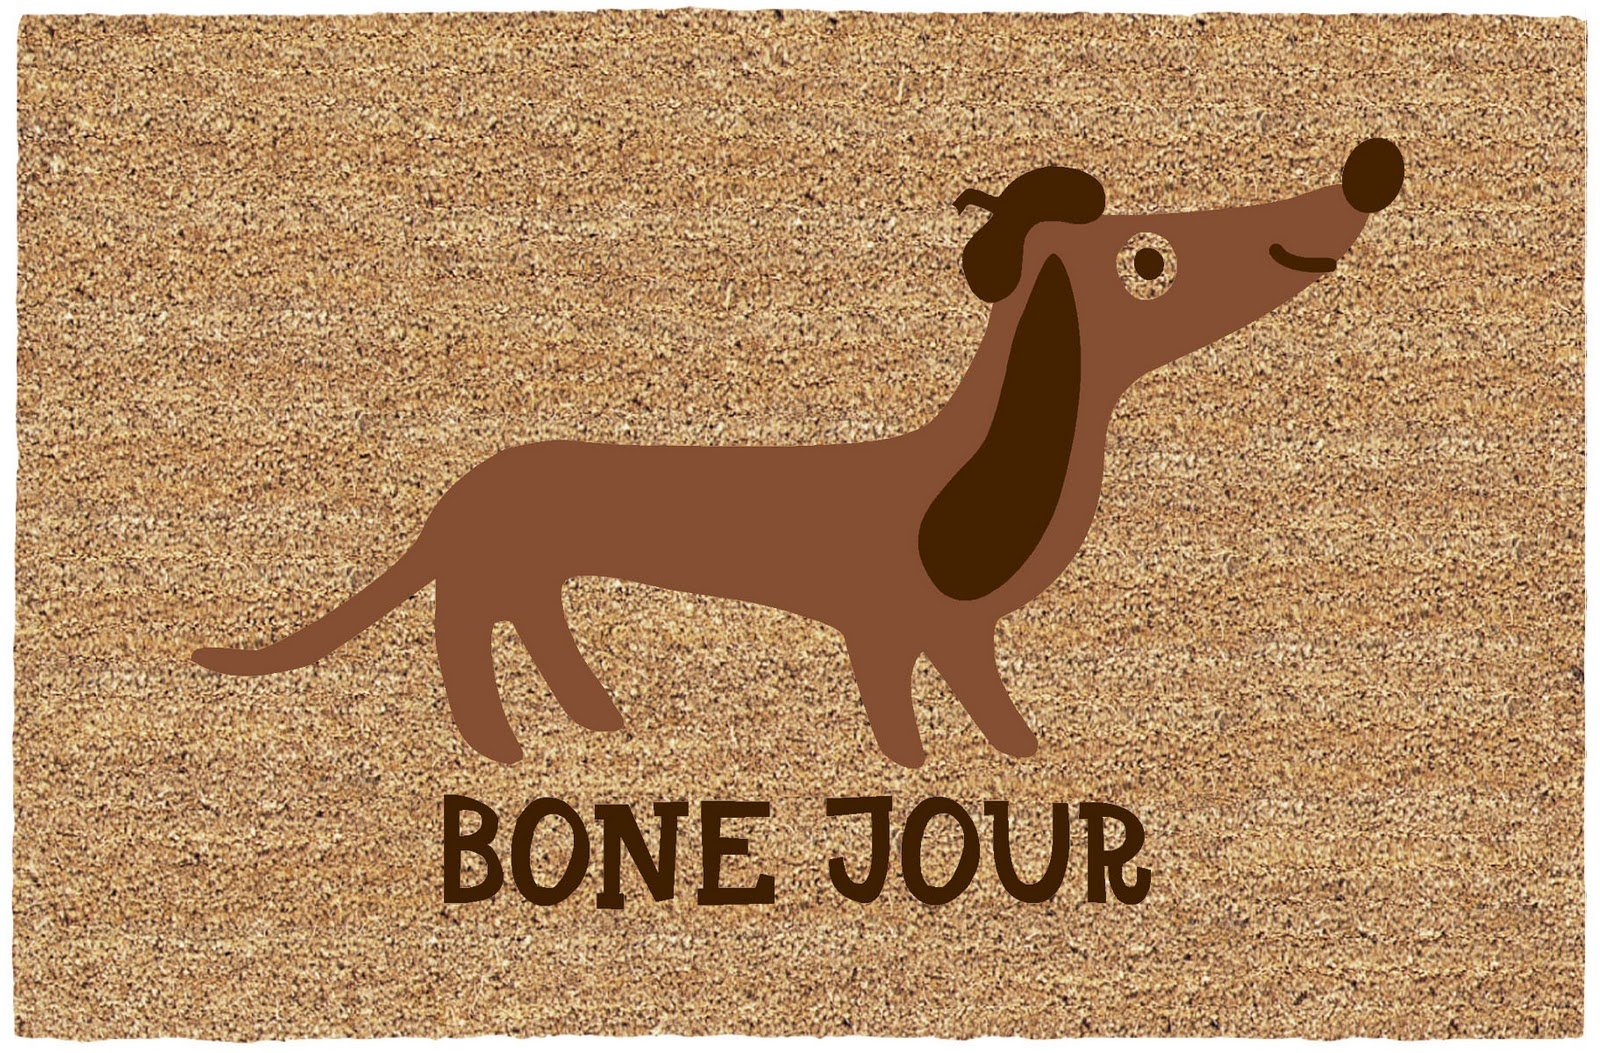 Welcome In The New Year With A Bone Jour Doormat!